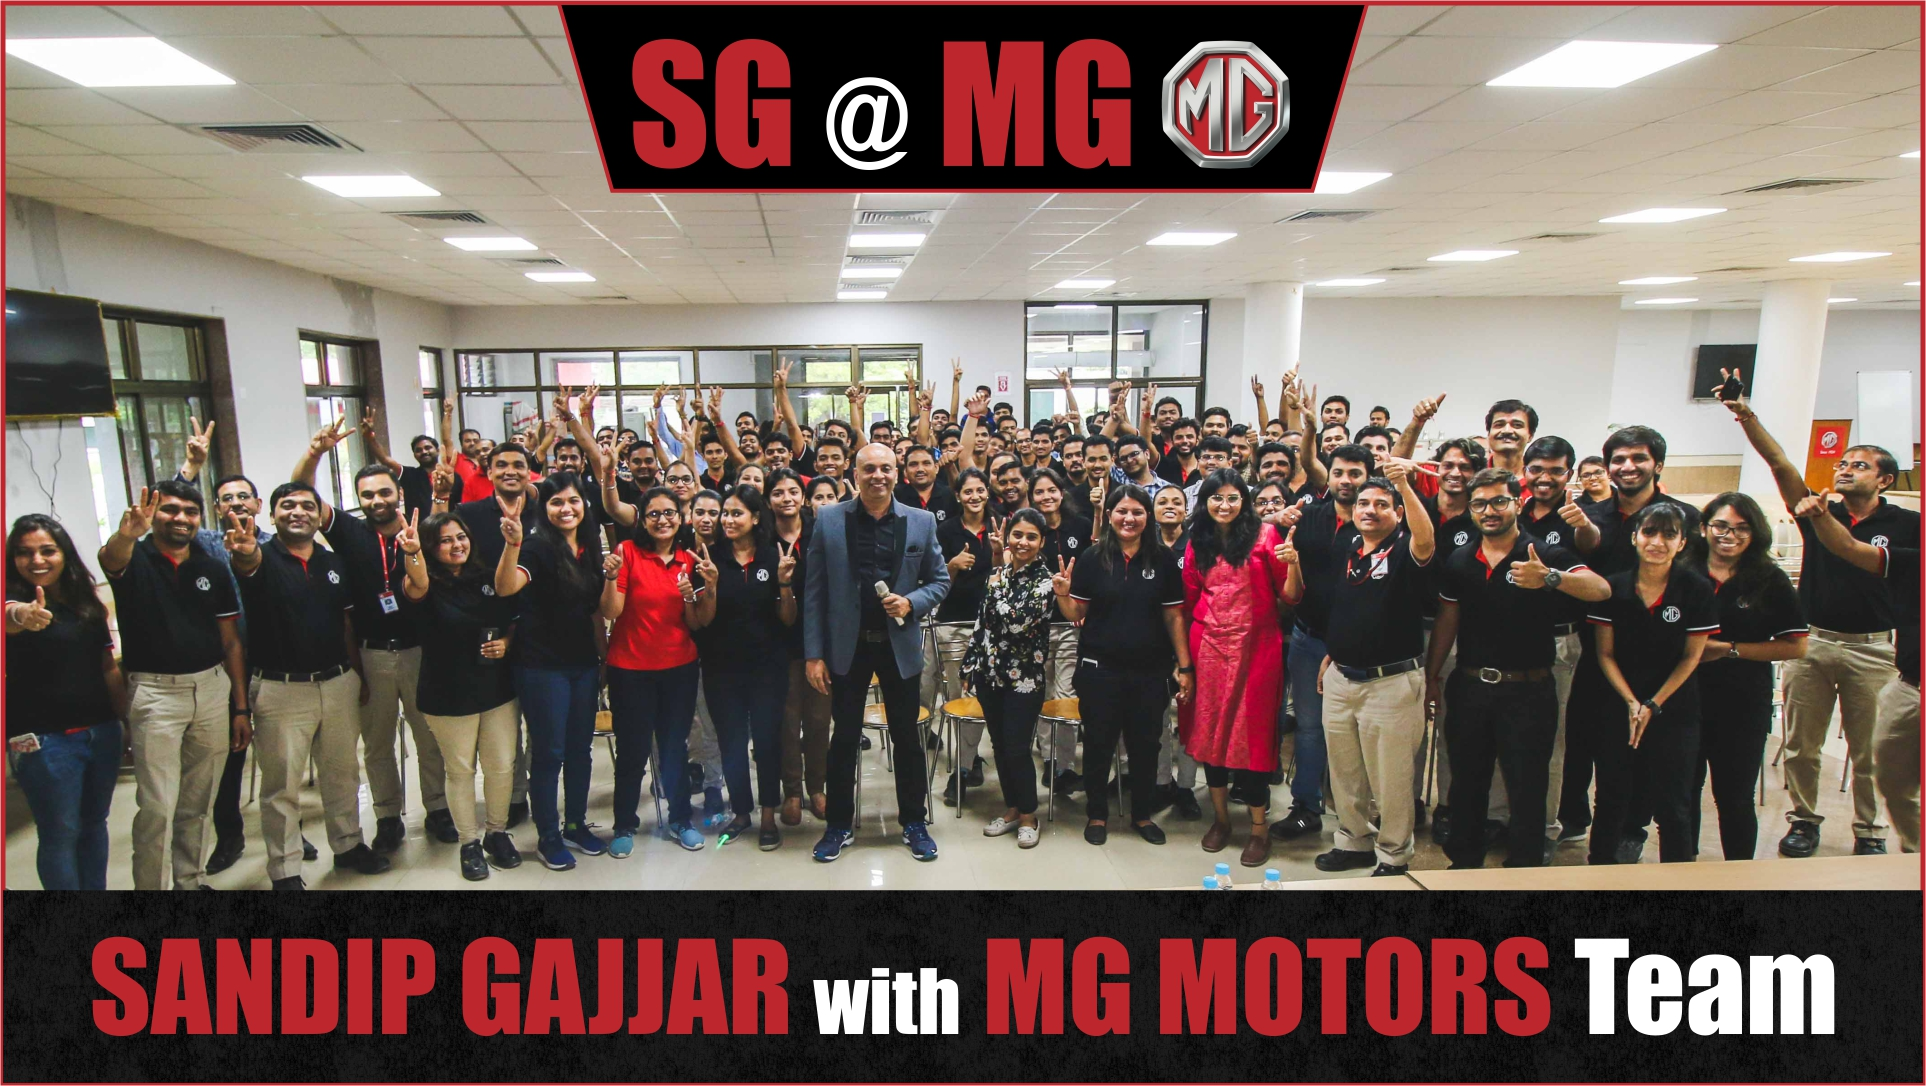 MG Motors India , MG Motors Team, MG Motors